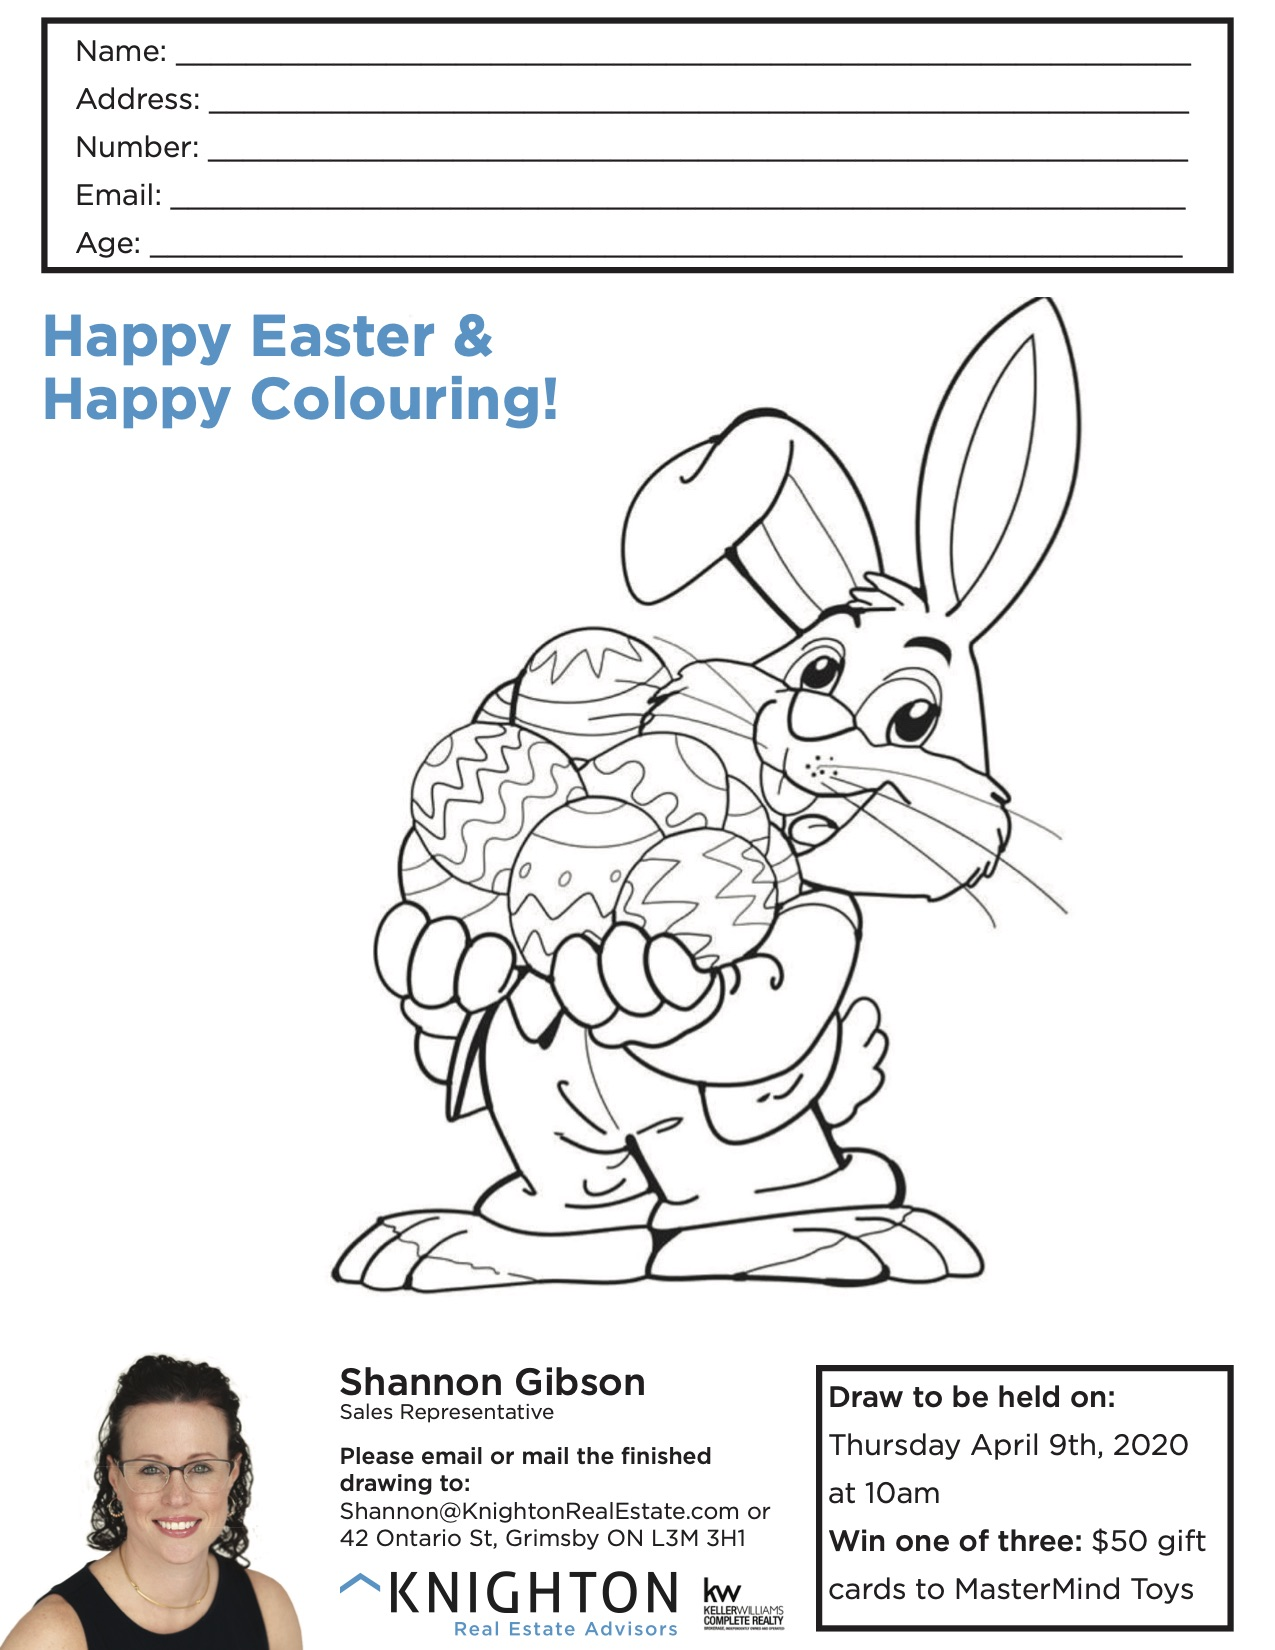 Easter Colouring Contest - Shan..jpg